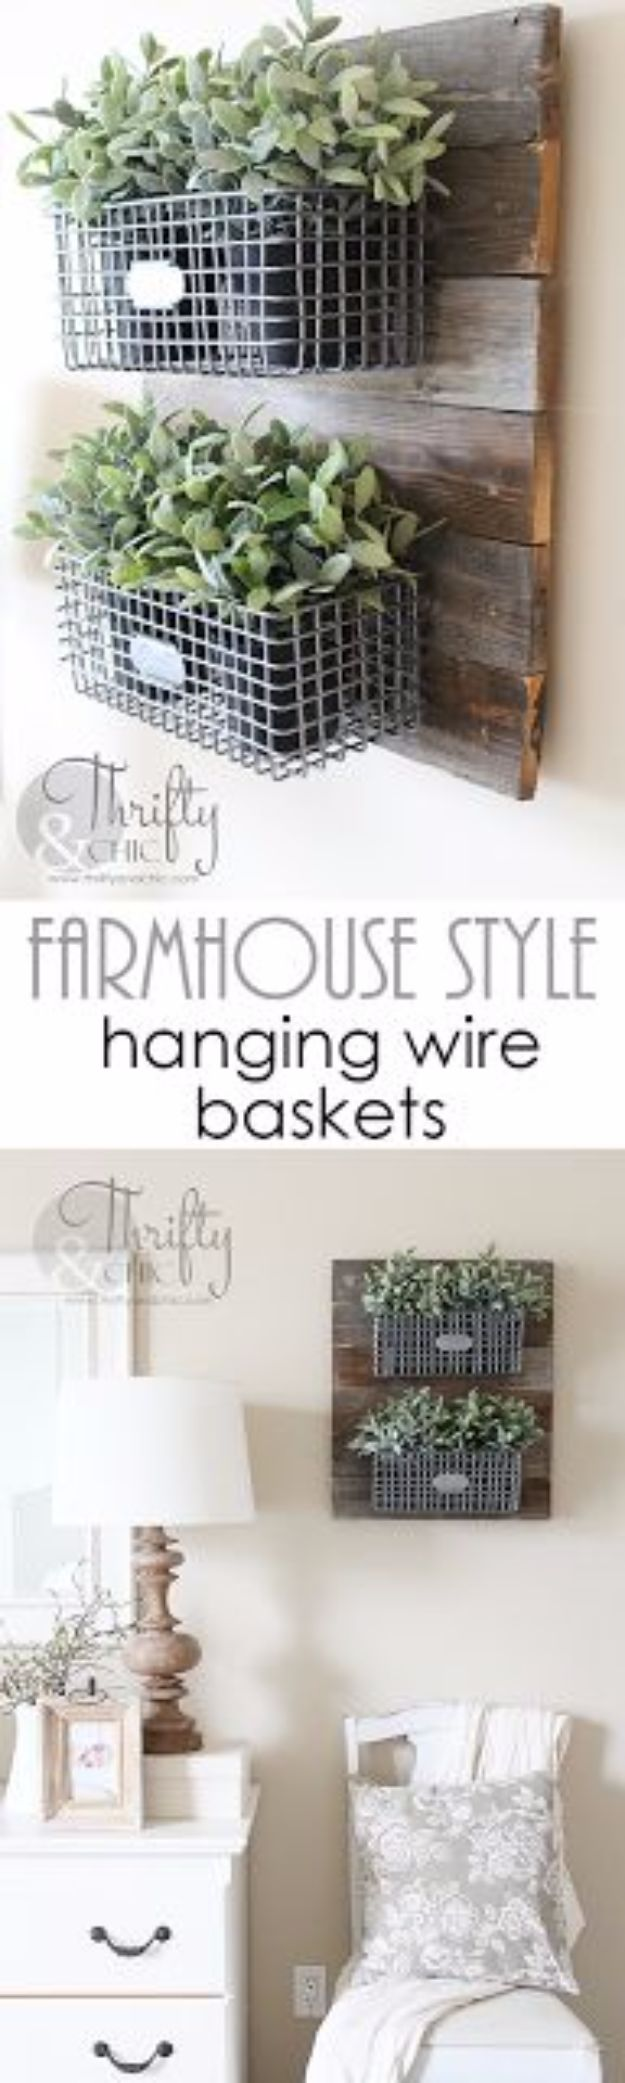 Best Country Decor Ideas - Farmhouse Style Hanging Wire Baskets - Rustic Farmhouse Decor Tutorials and Easy Vintage Shabby Chic Home Decor for Kitchen, Living Room and Bathroom - Creative Country Crafts, Rustic Wall Art and Accessories to Make and Sell